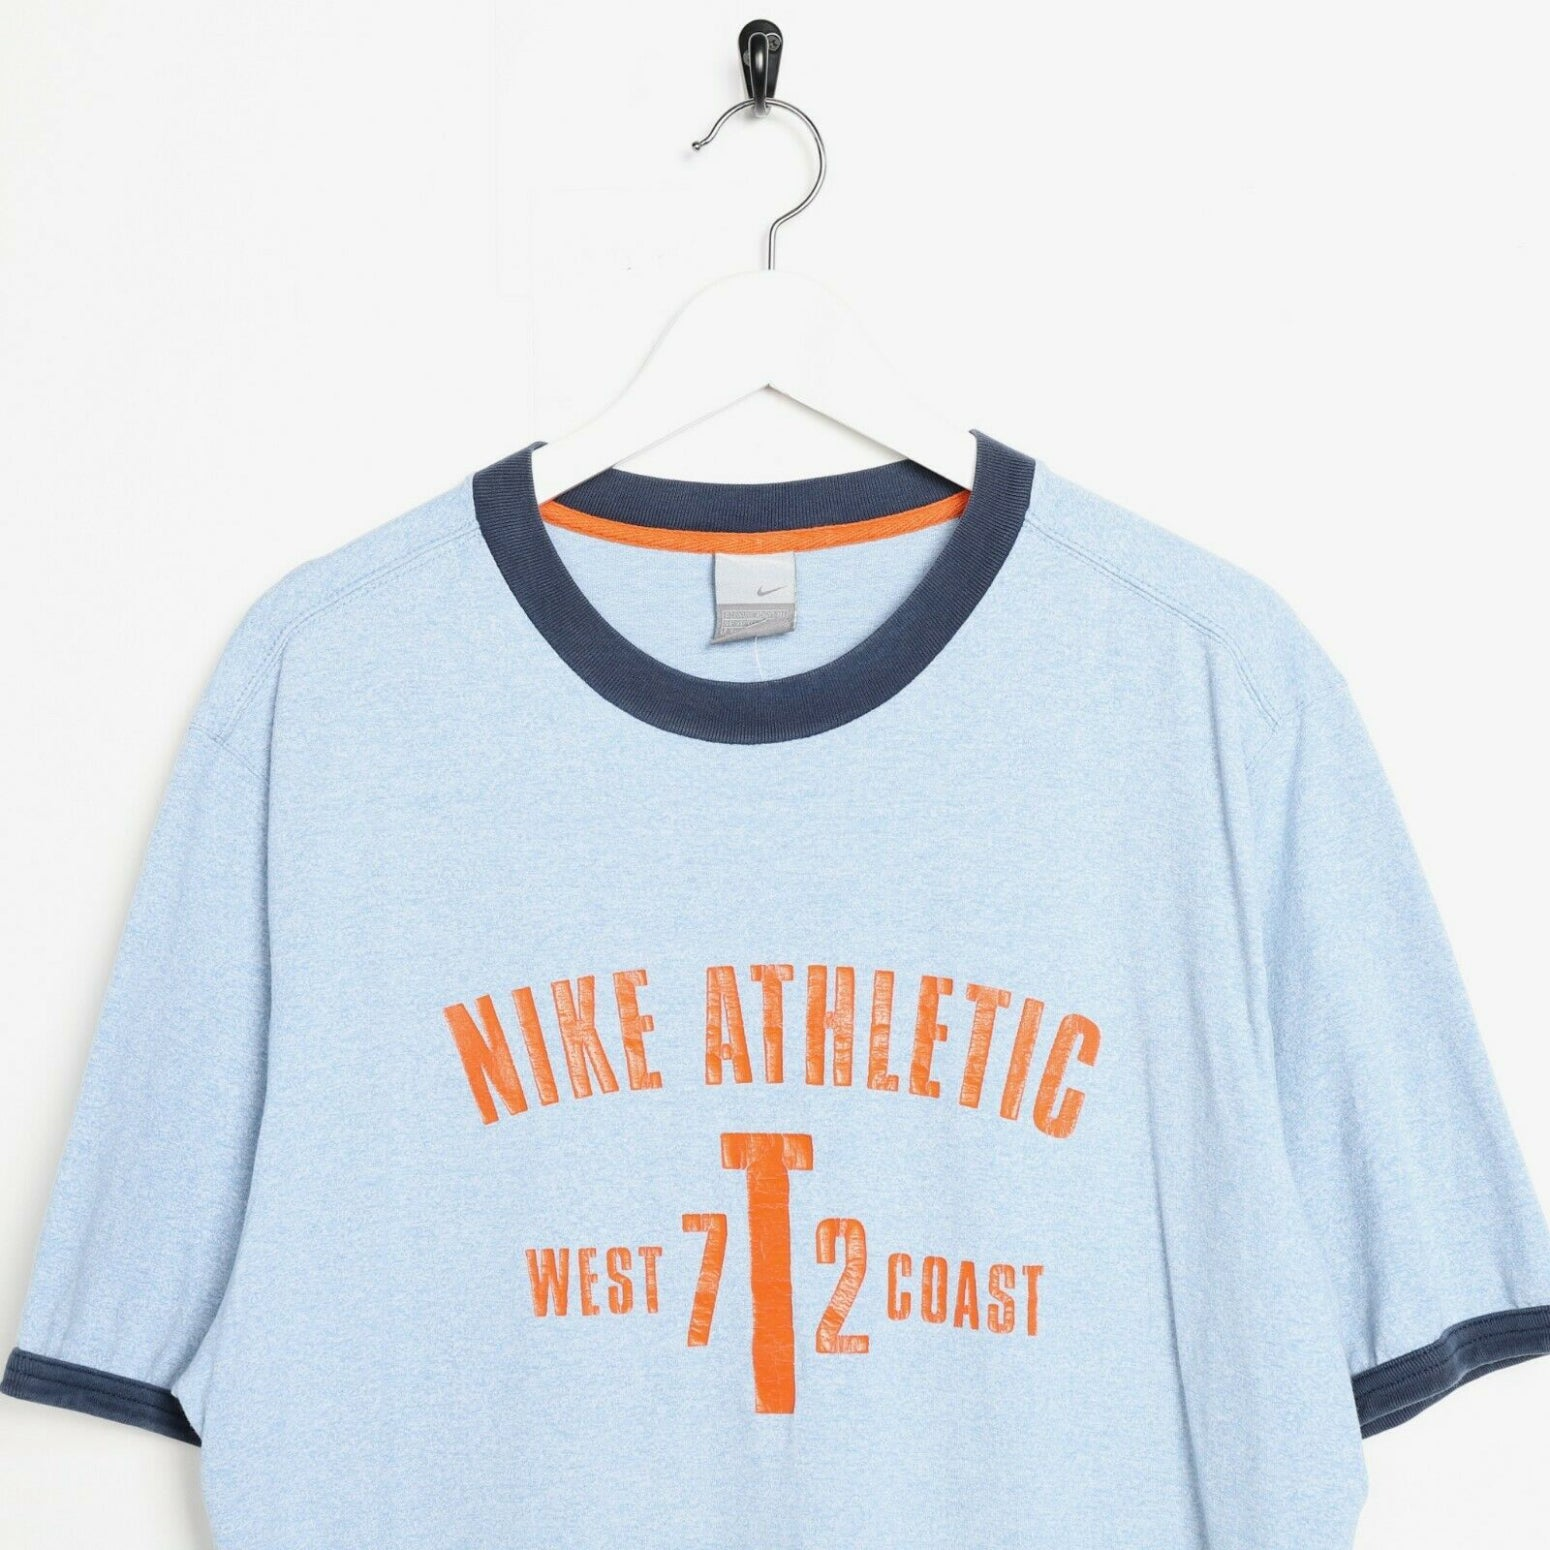 Vintage NIKE Athletic Big Graphic Logo T Shirt Tee Blue XL